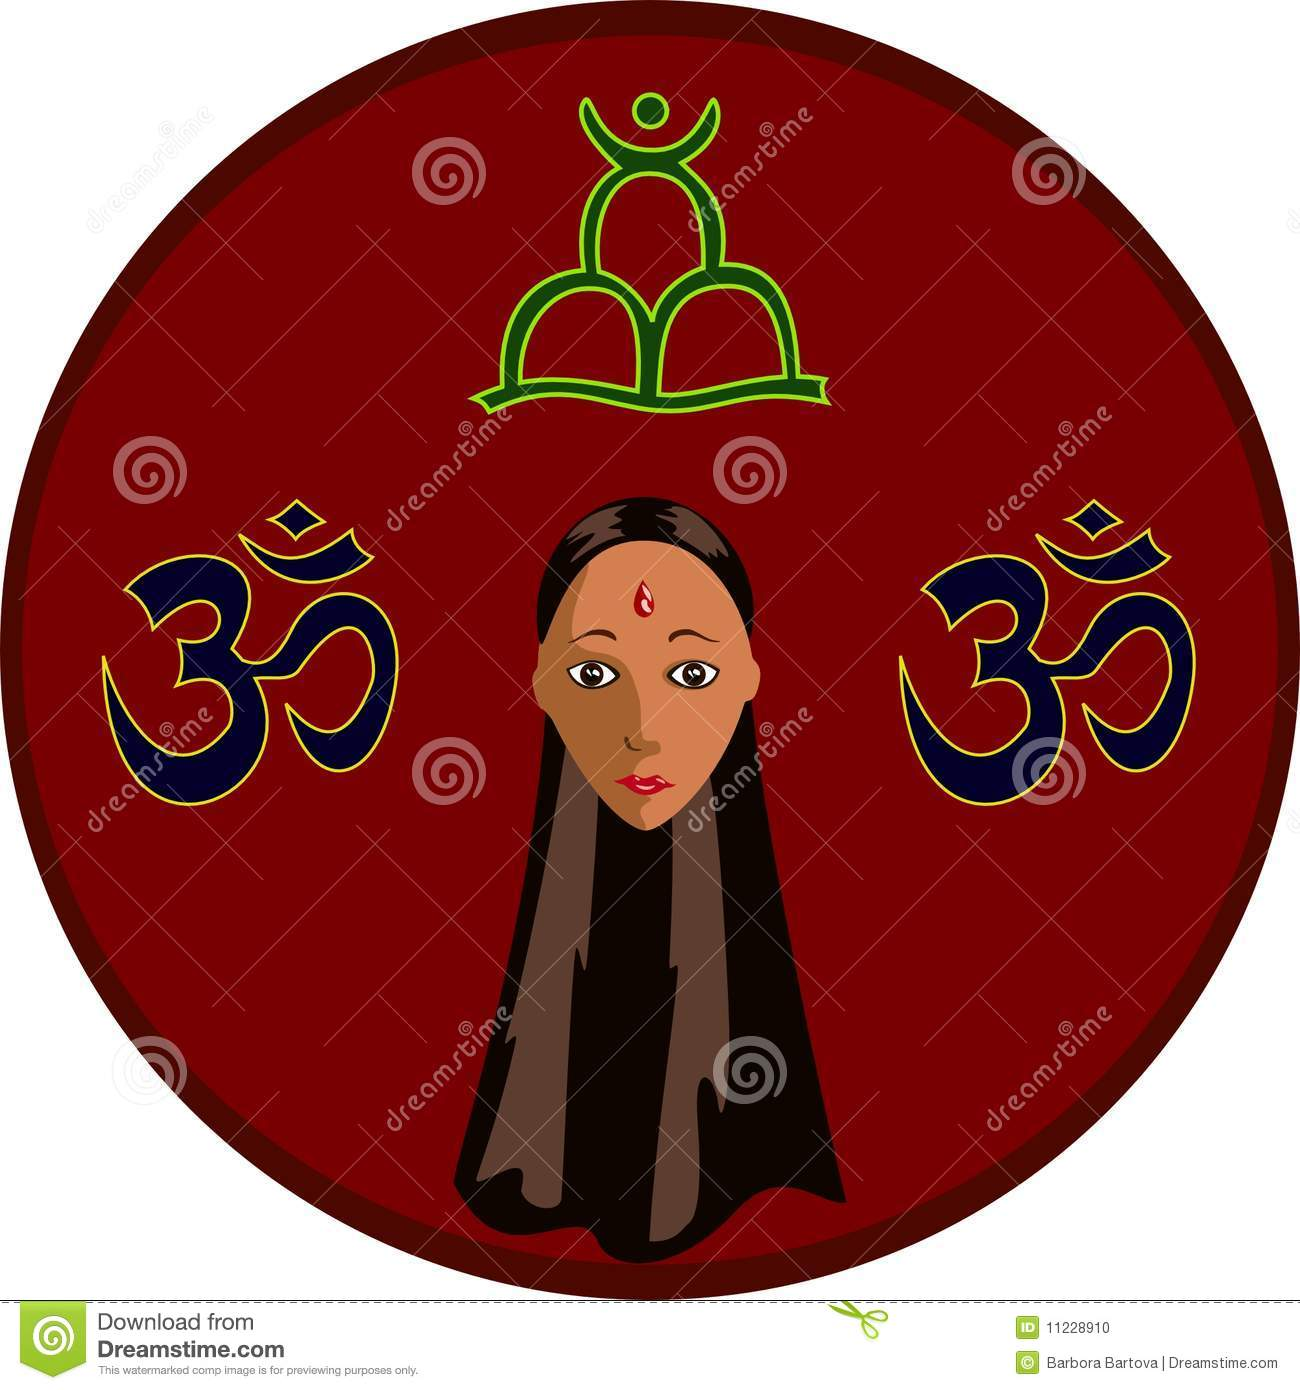 circle hindu personals Hindu and buddhist men are often vegetarian,  as mentioned earlier by someone that the best test is to see if the guy is opening up his personal circle.